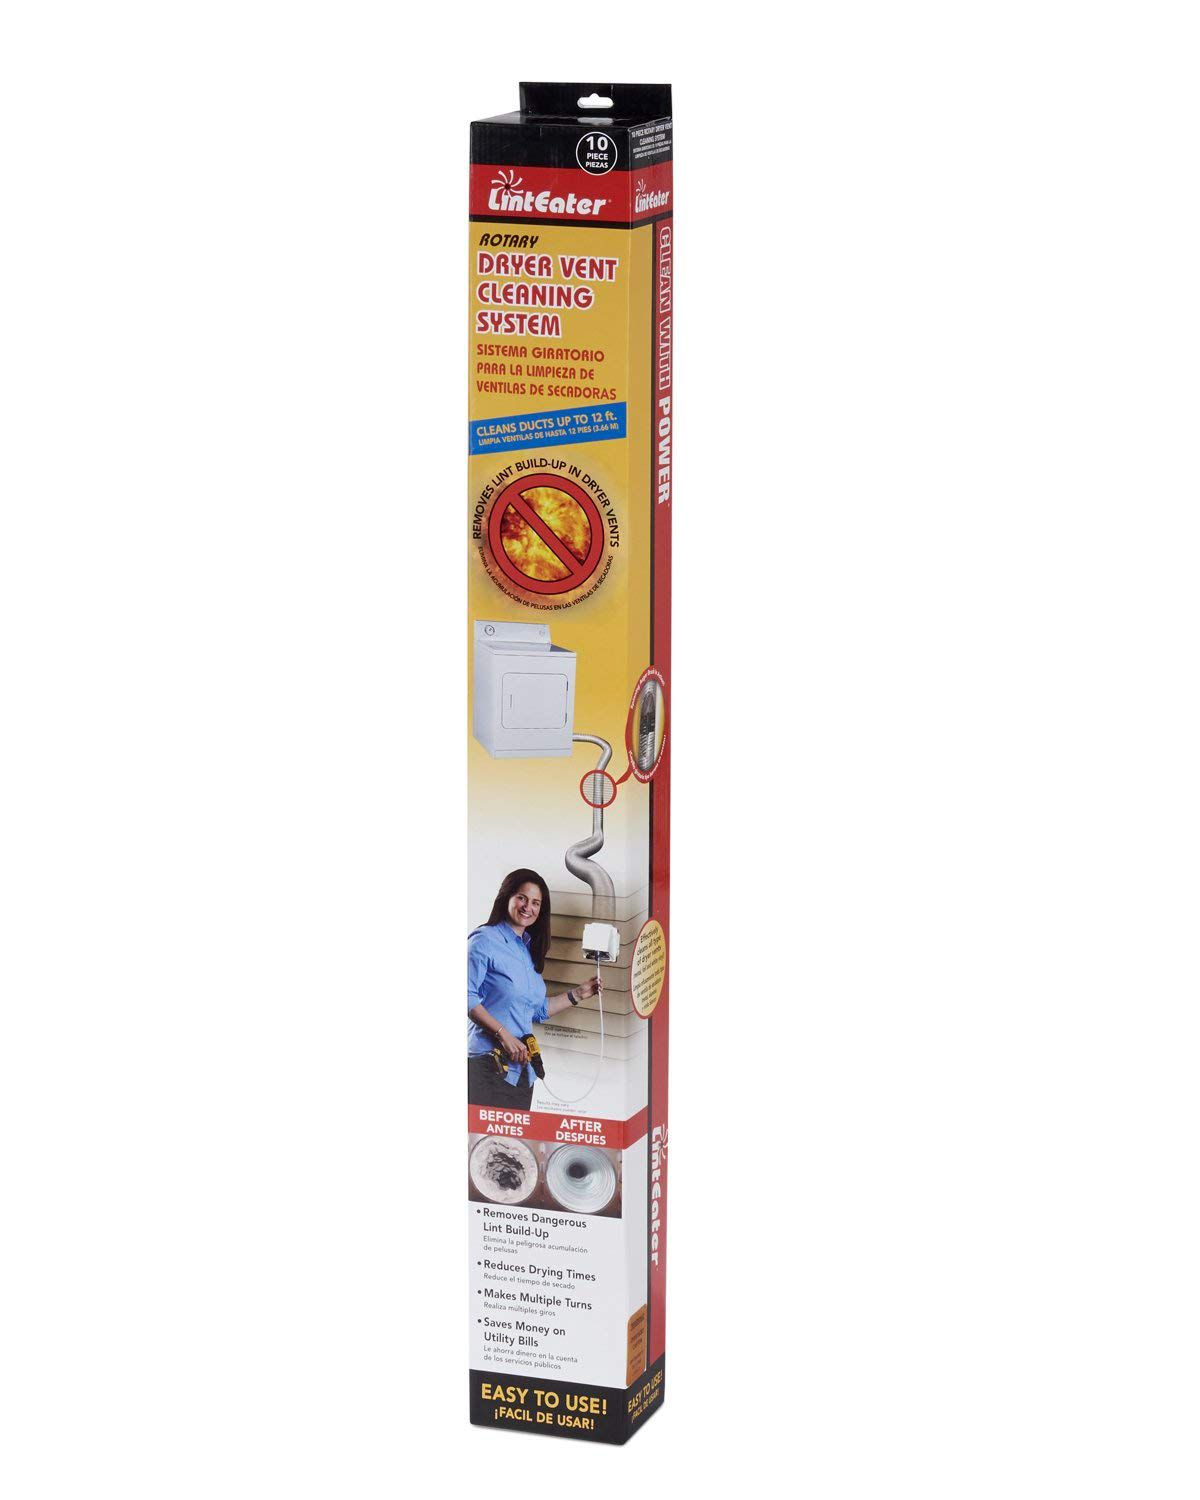 Dryer vent cleaning system